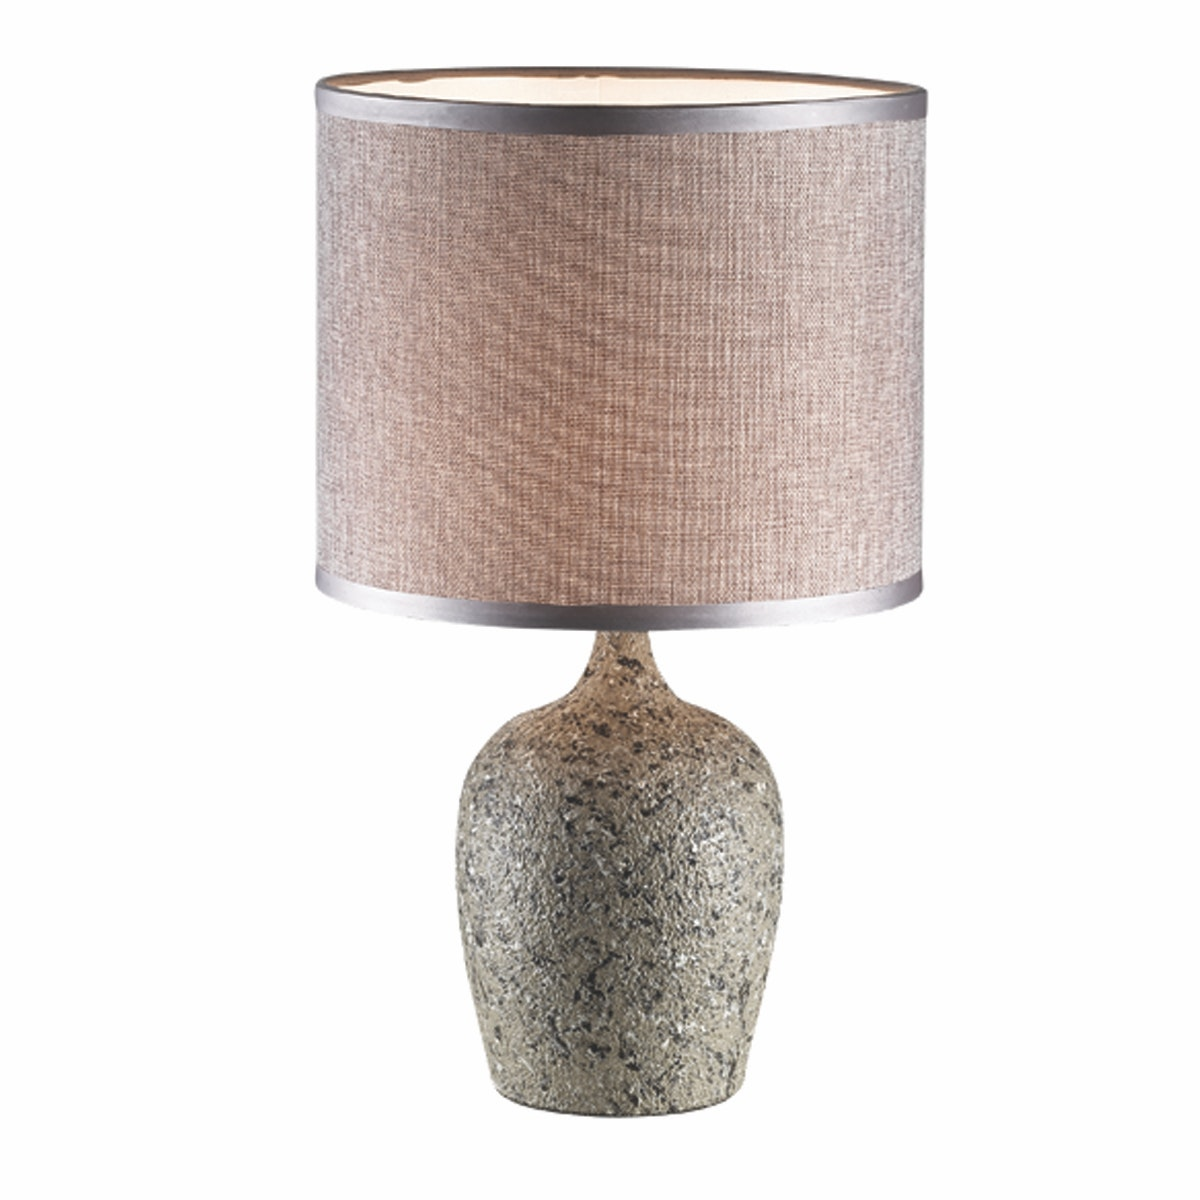 3+PROJECTS Lampu Meja Table Lamp Grey Fabric Shade 3+DL-PD7141-GR-VG